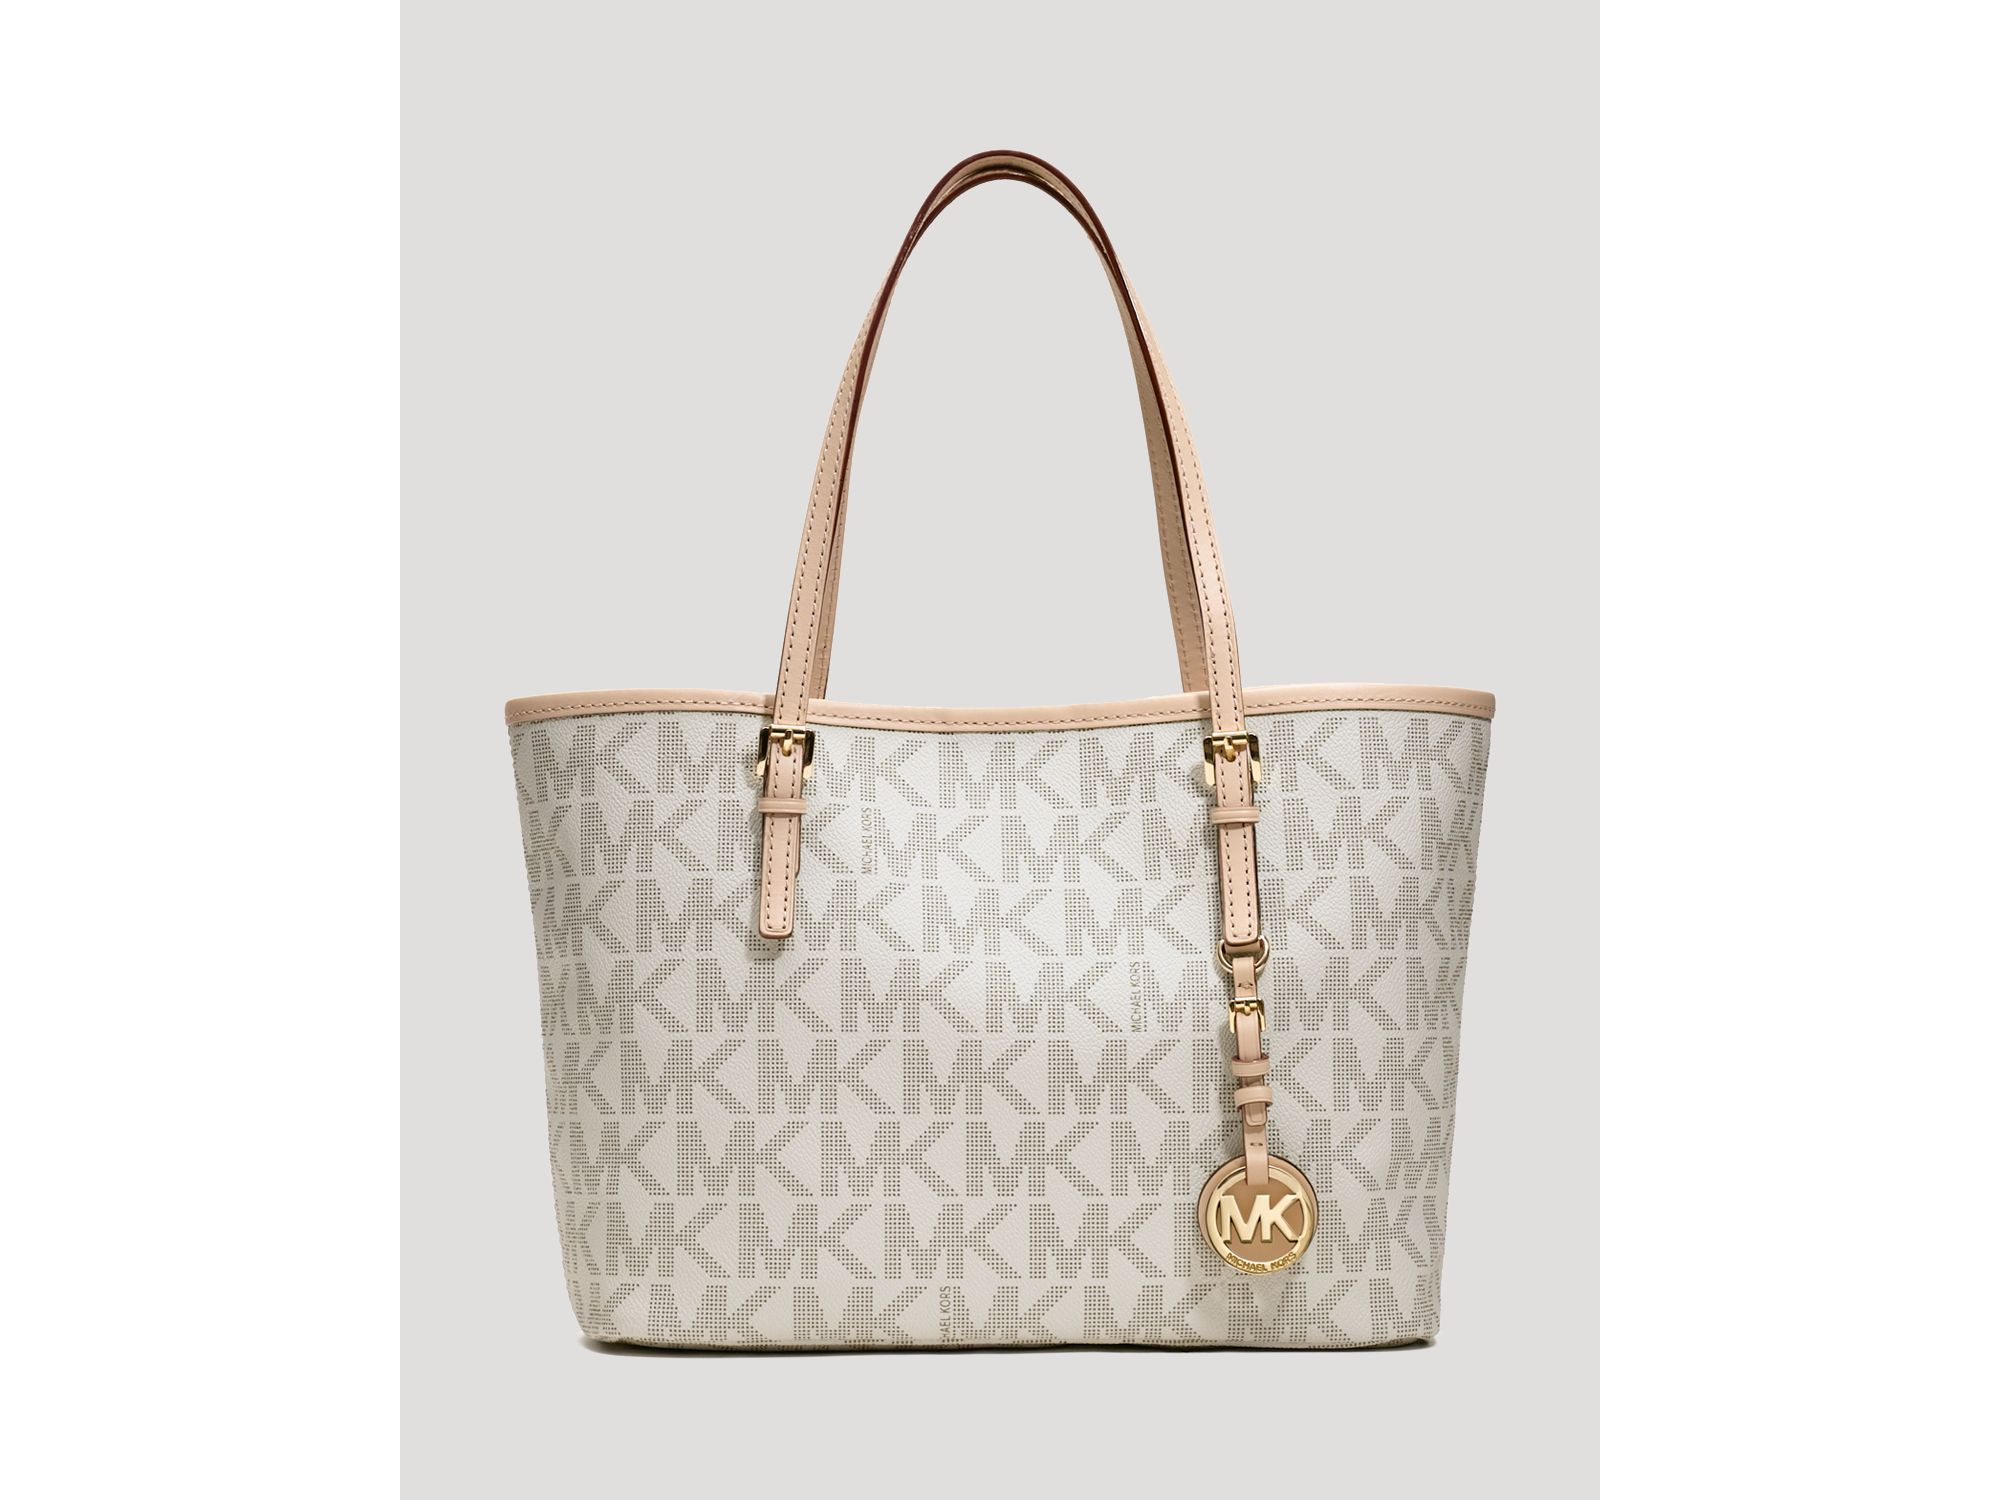 Bolsa Michael Kors Tote Vanilla : Michael kors tote jet set travel small in white